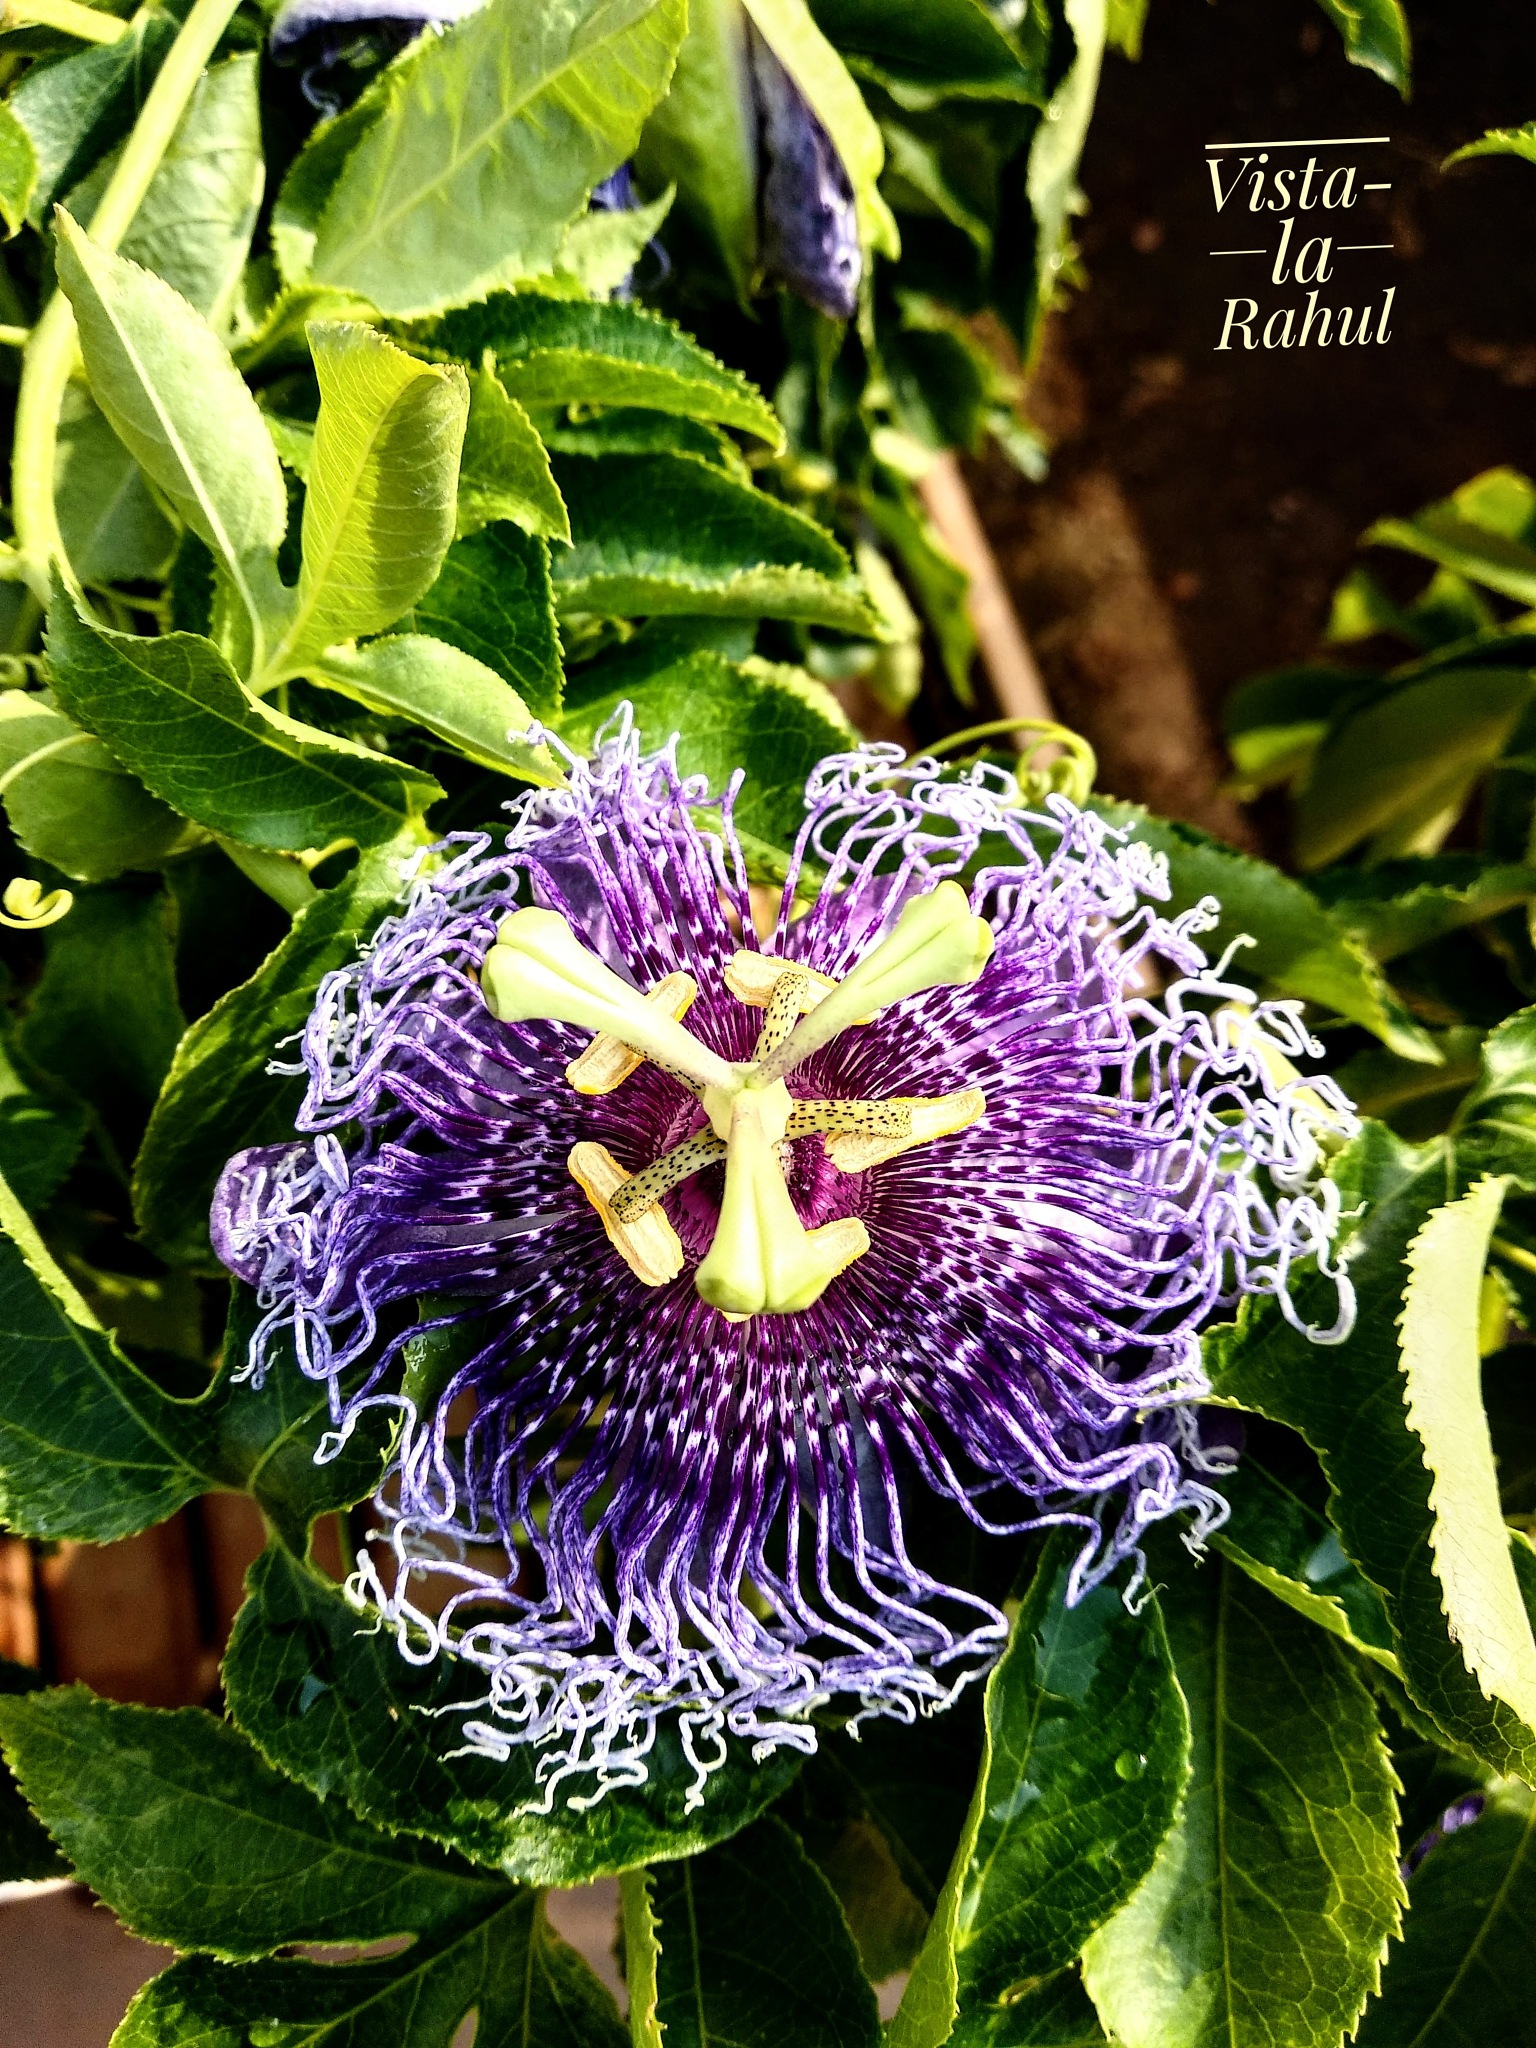 Purple Passion Flower by gedamicrahul